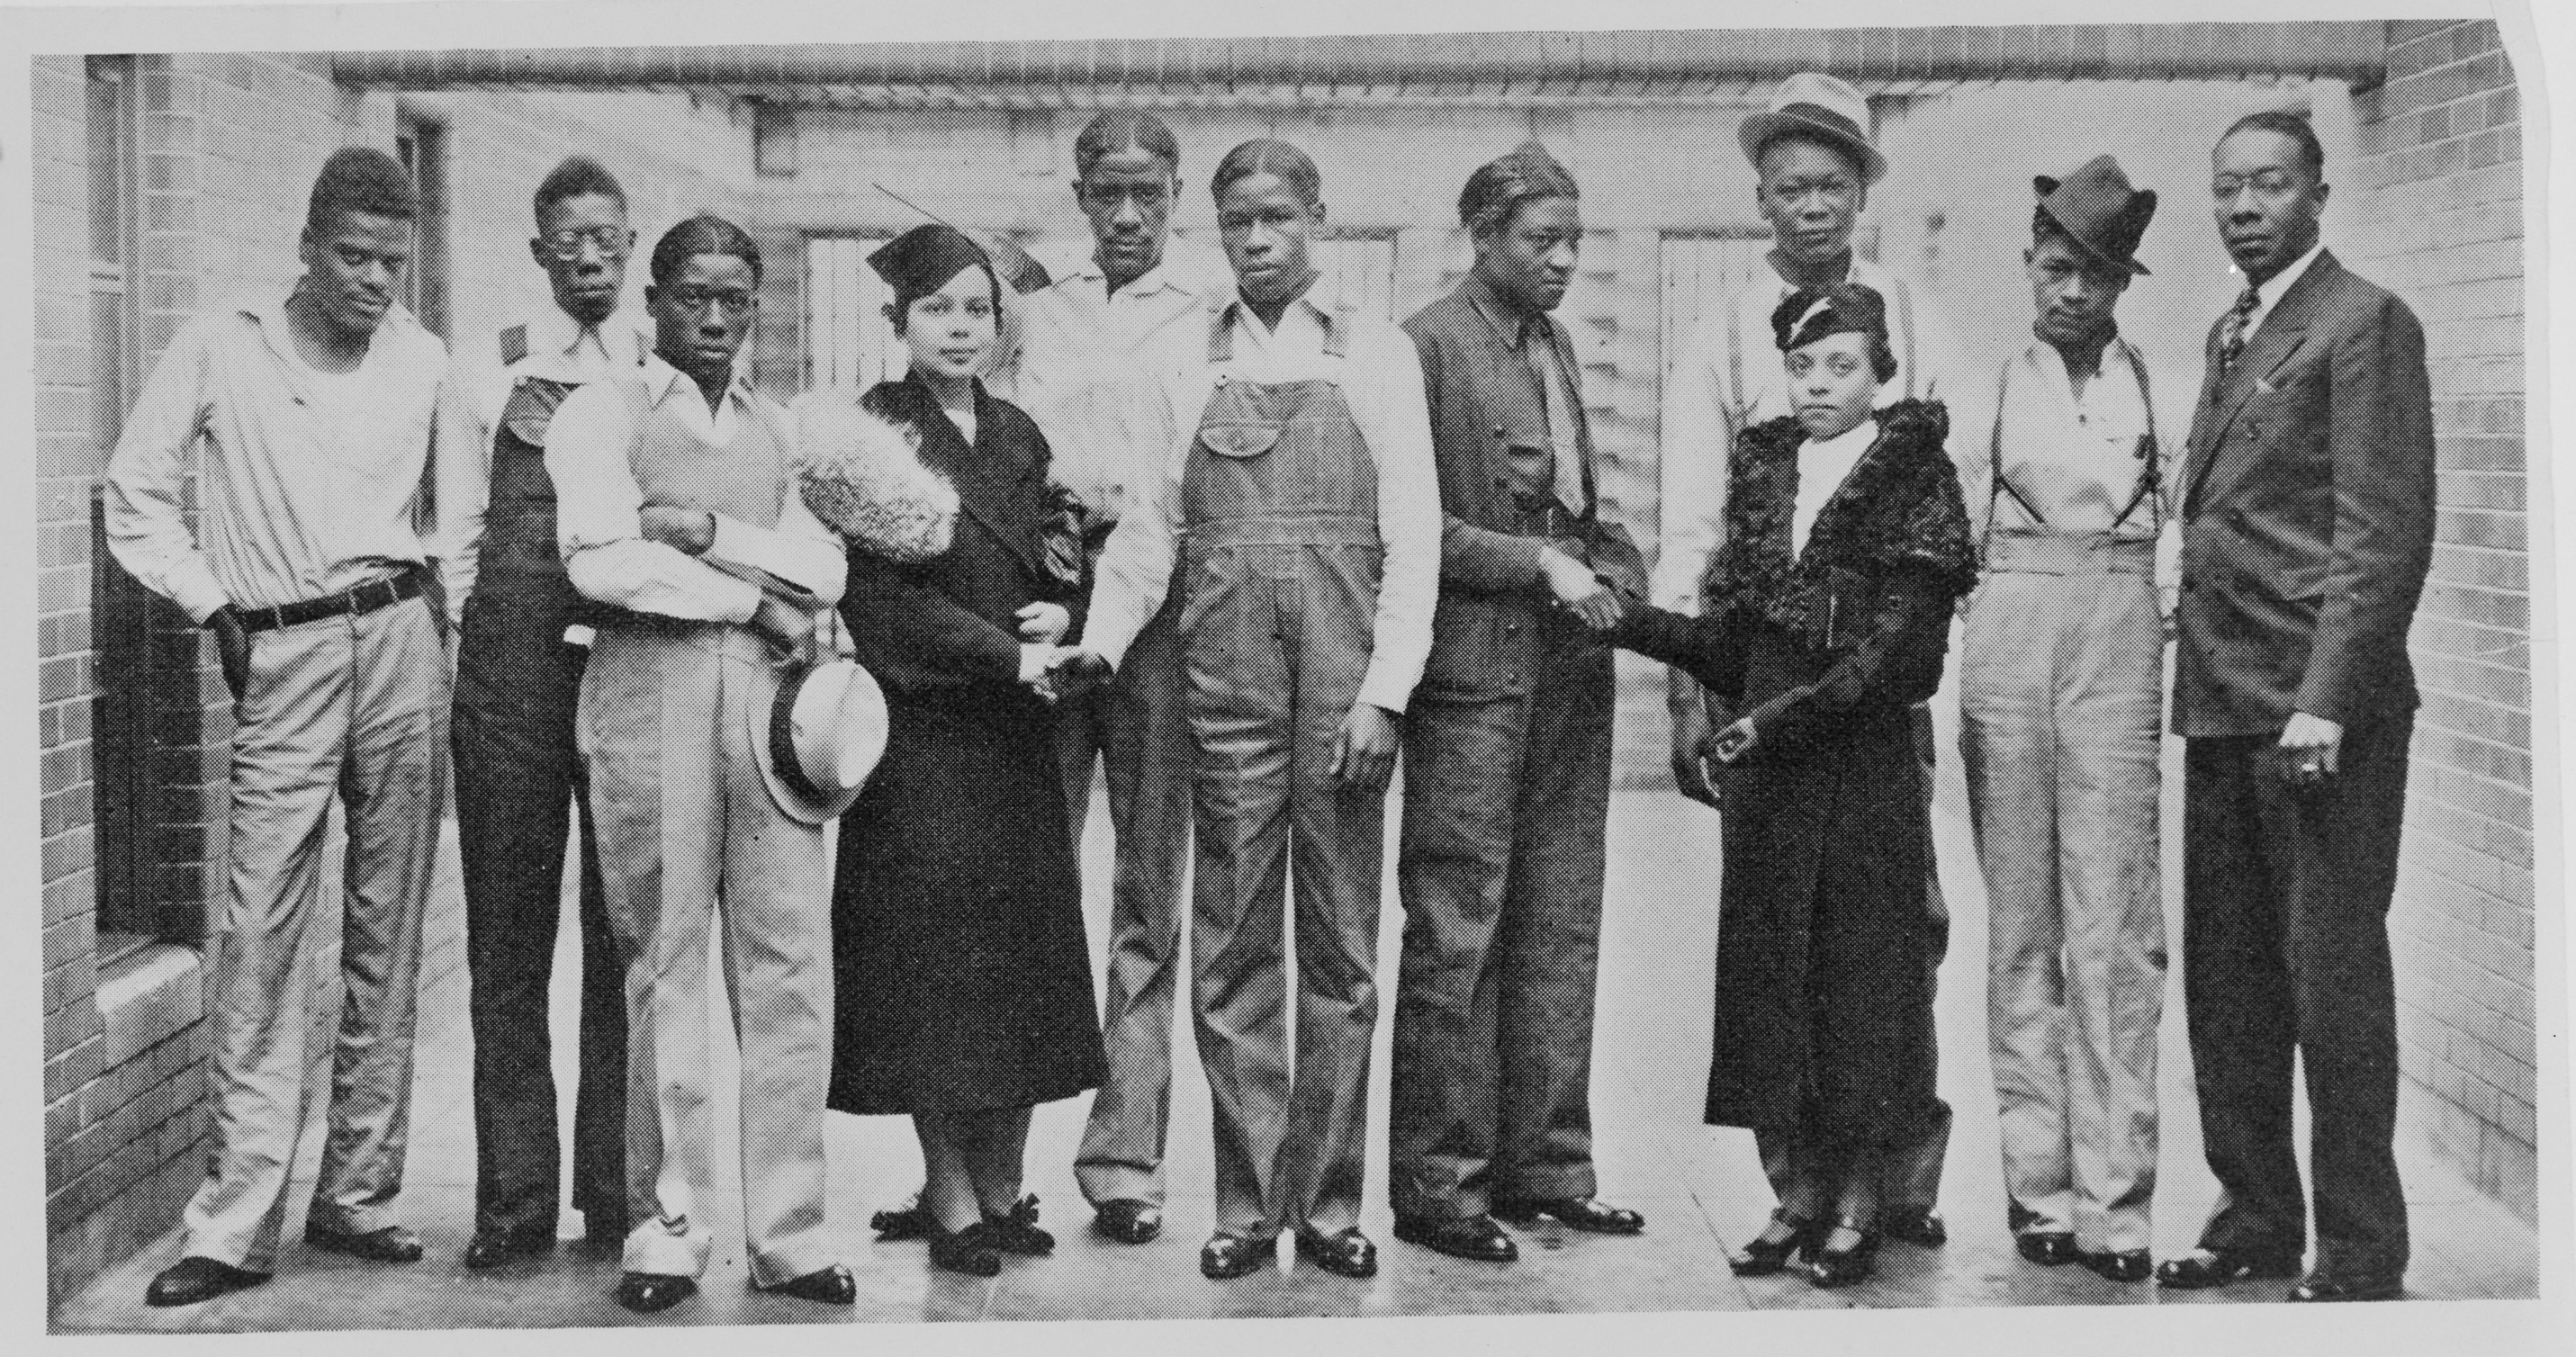 scottsboro boys trial essay The scottsboro boys, as they would become known, were the catalyst for the civil rights movement in the united states his is their story he scottsboro boys case began on march 25, 1931, when nine young black men.